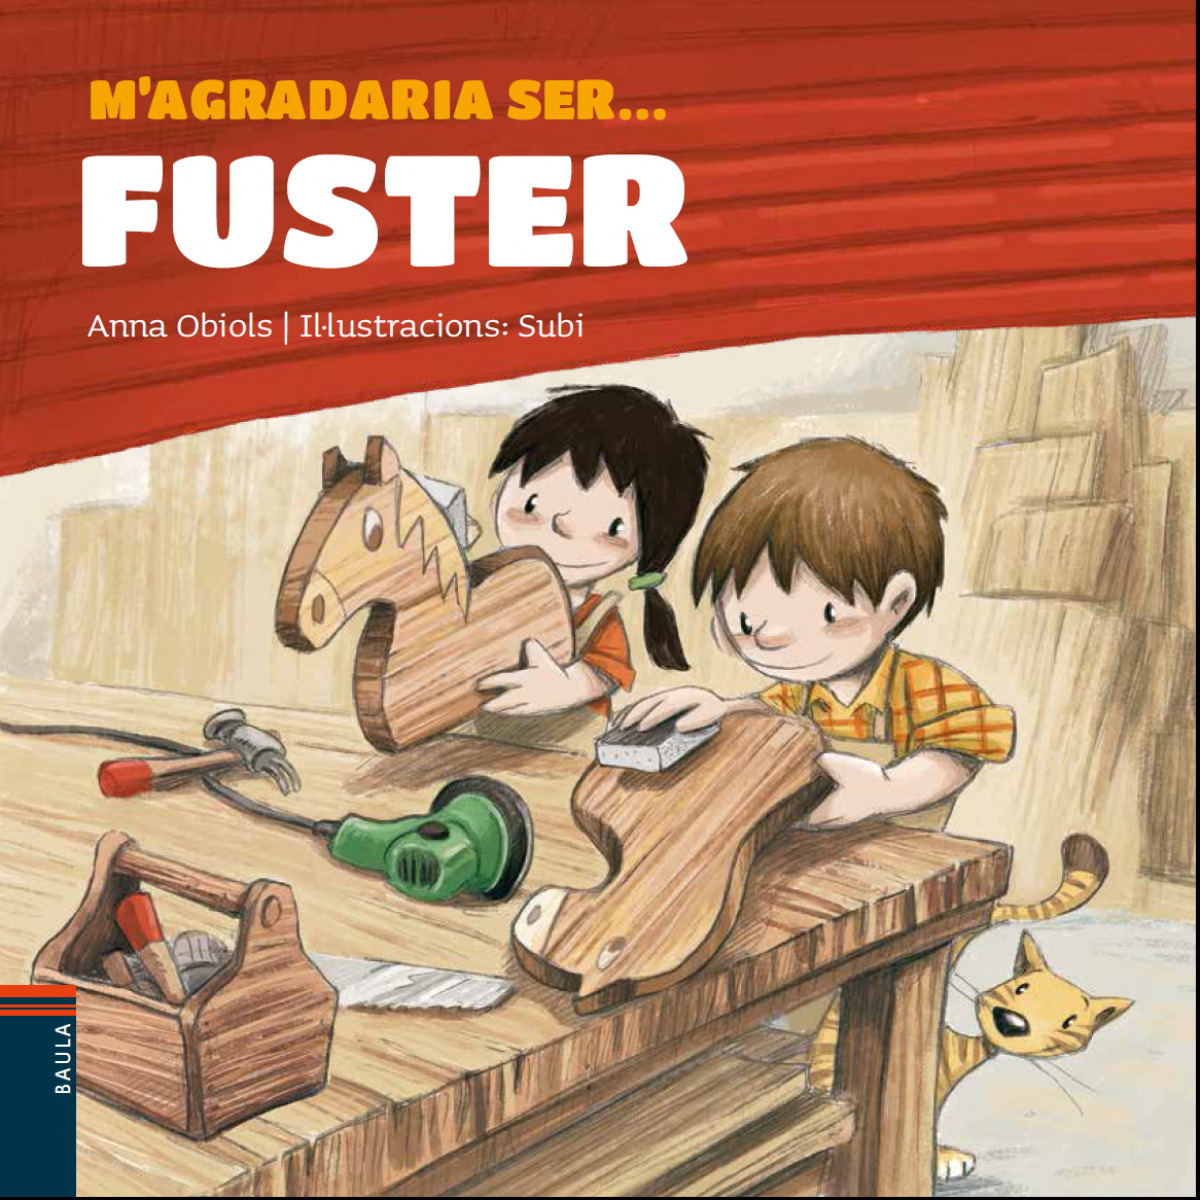 FUSTER